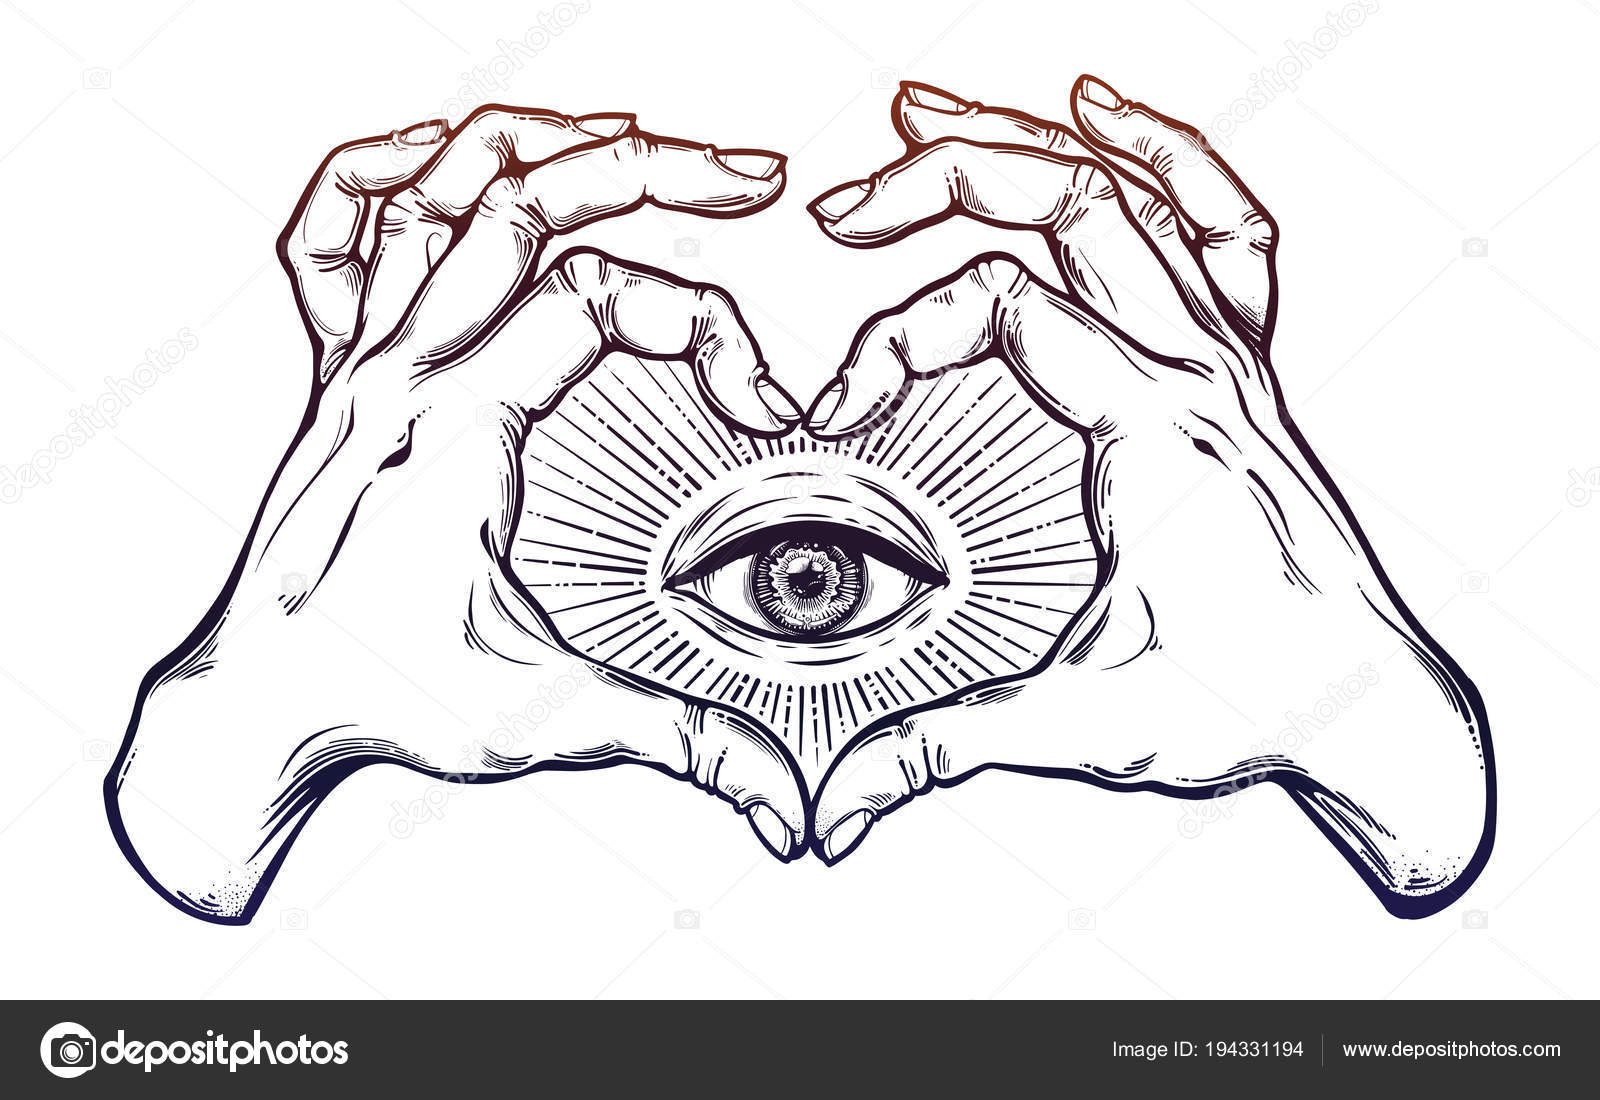 Two Hands Heart Sign With All Seeing Eye Symbol Stock Vector